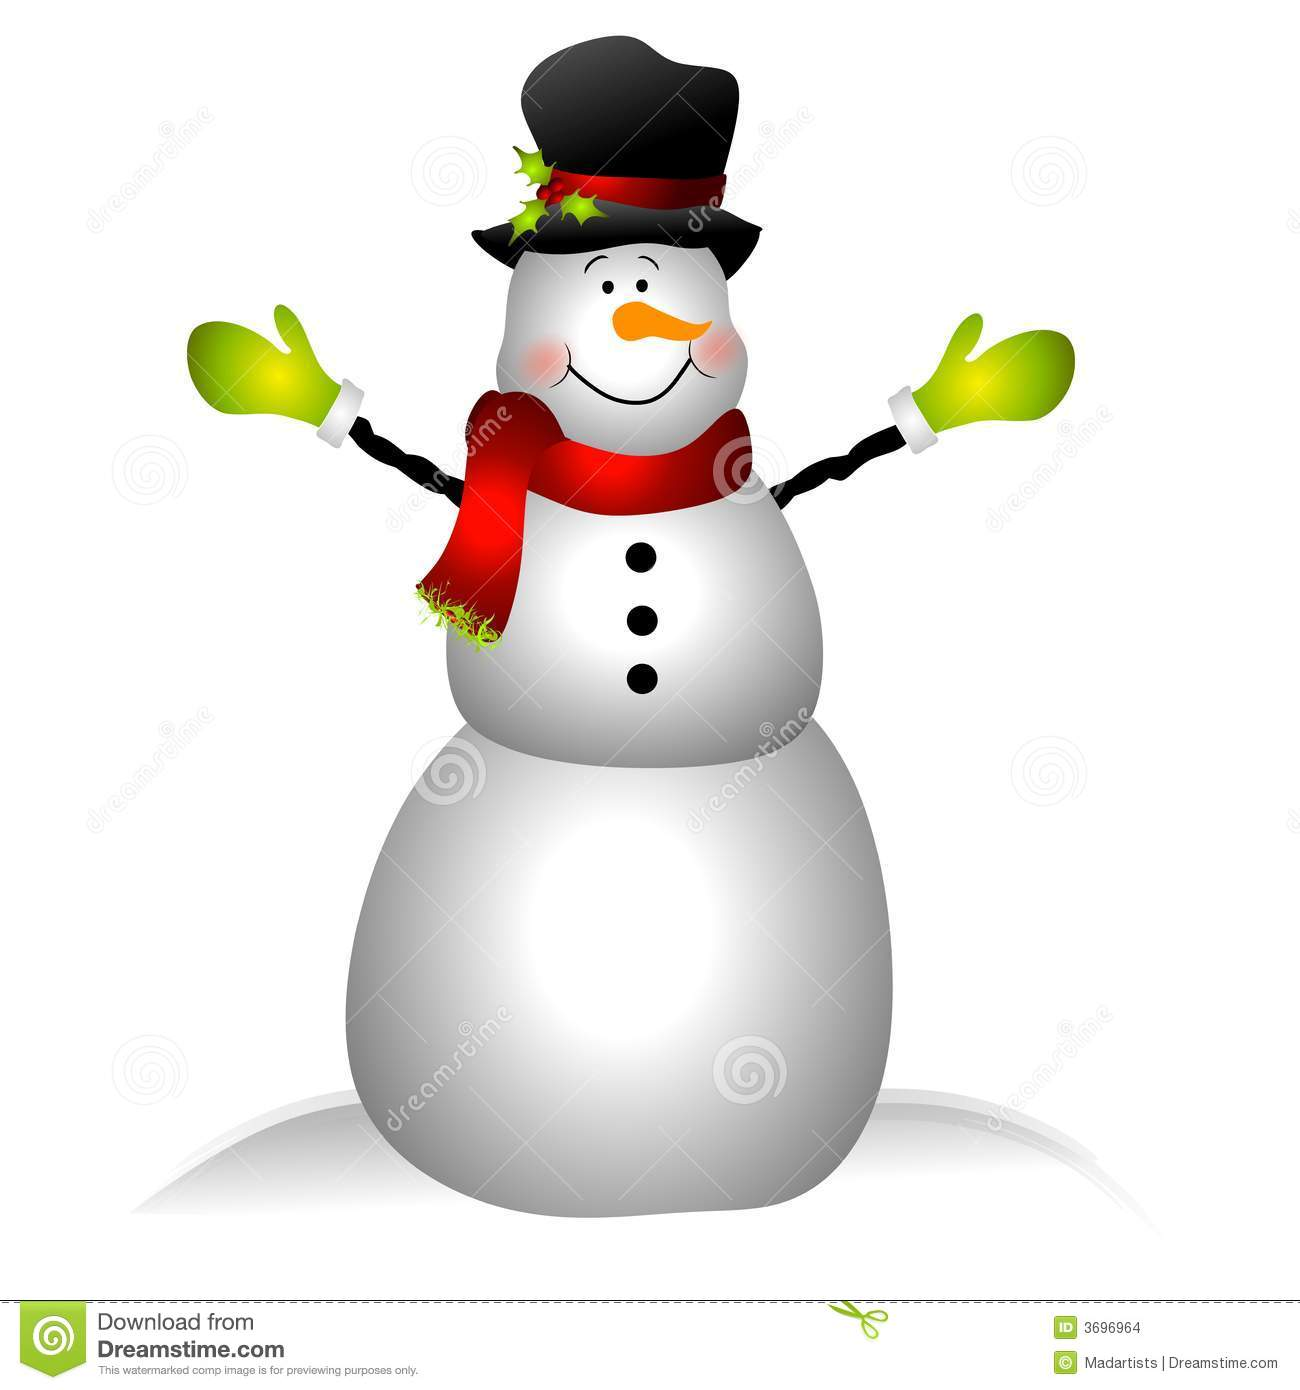 Clip Art Illustration Featuring A Snowman Dressed In Hat Scarf